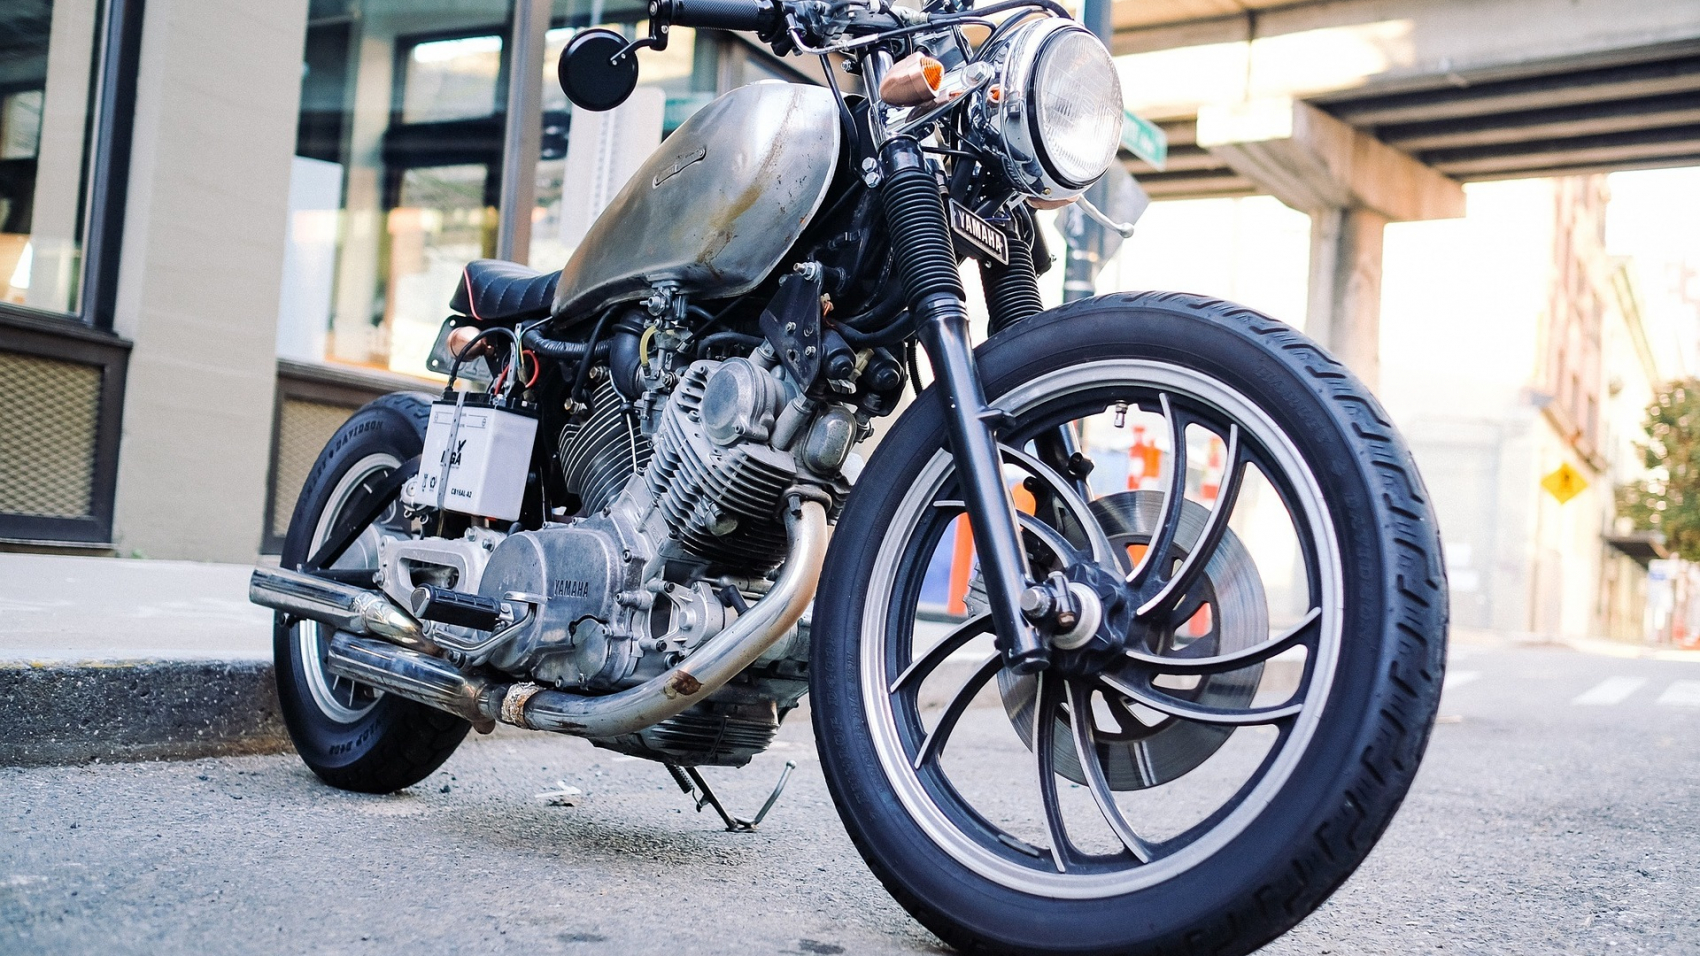 motorcycle-1149389_1920